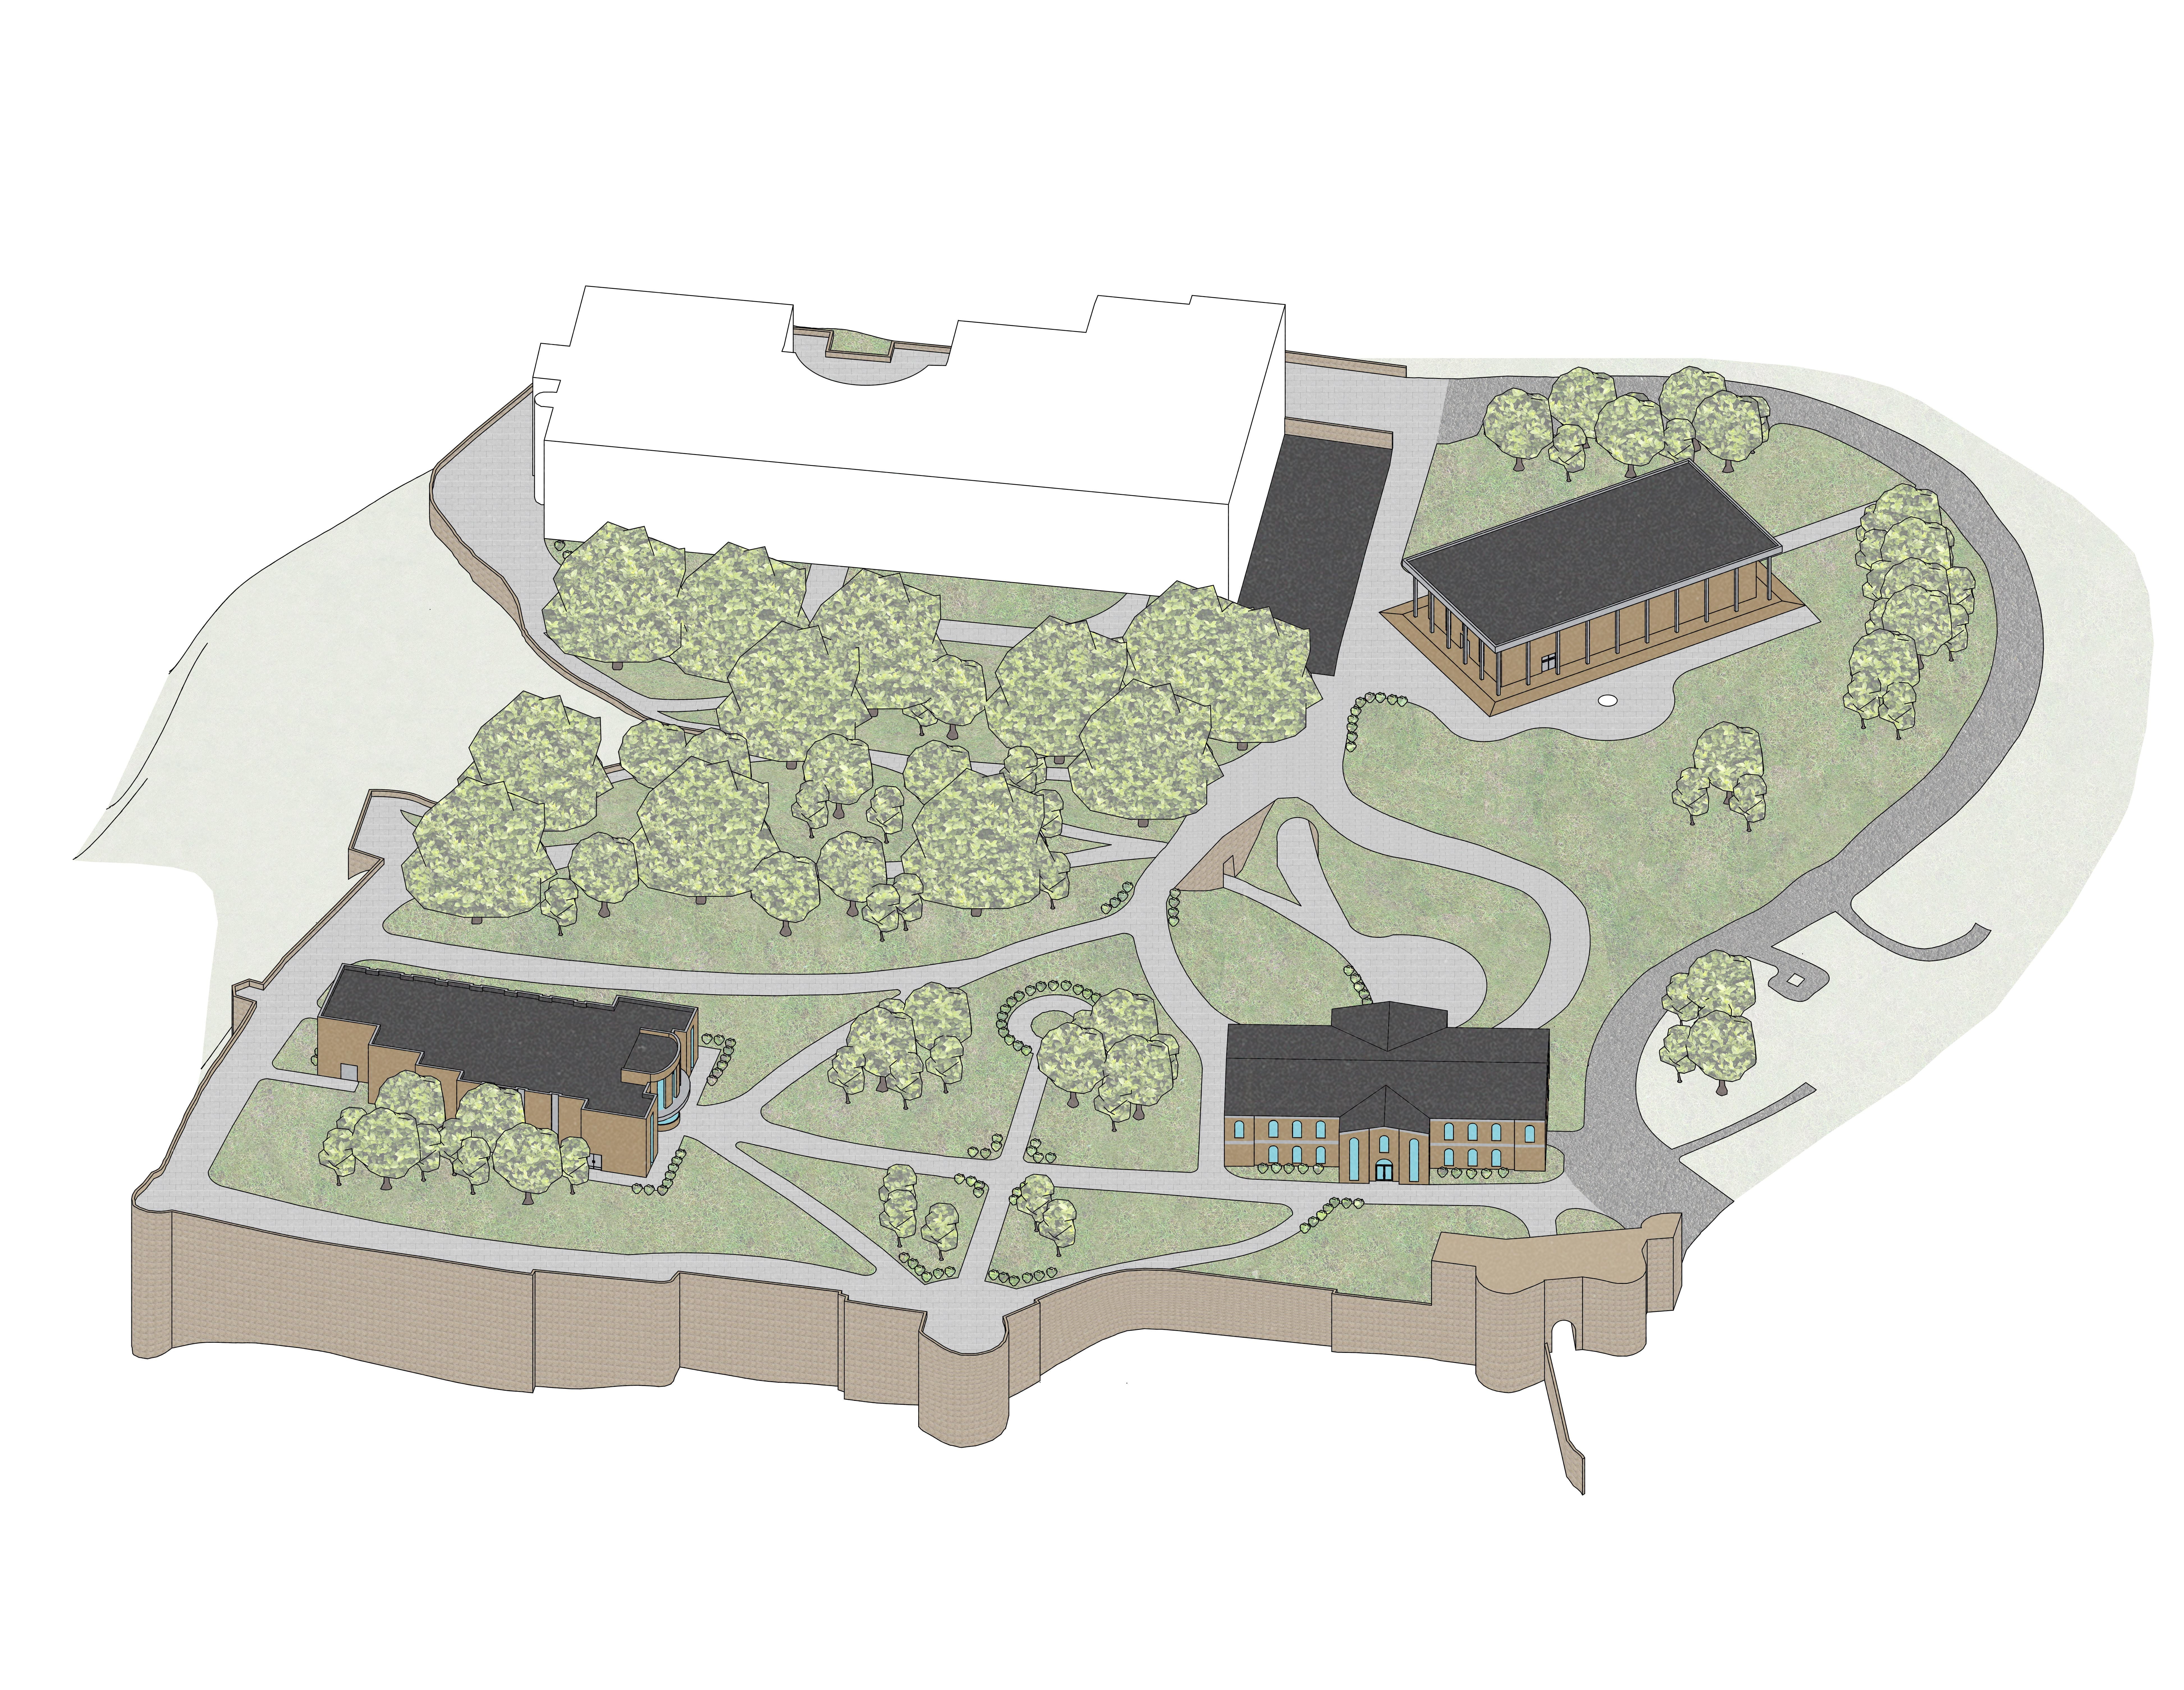 3d Axonometric Drawing of the Complete Site